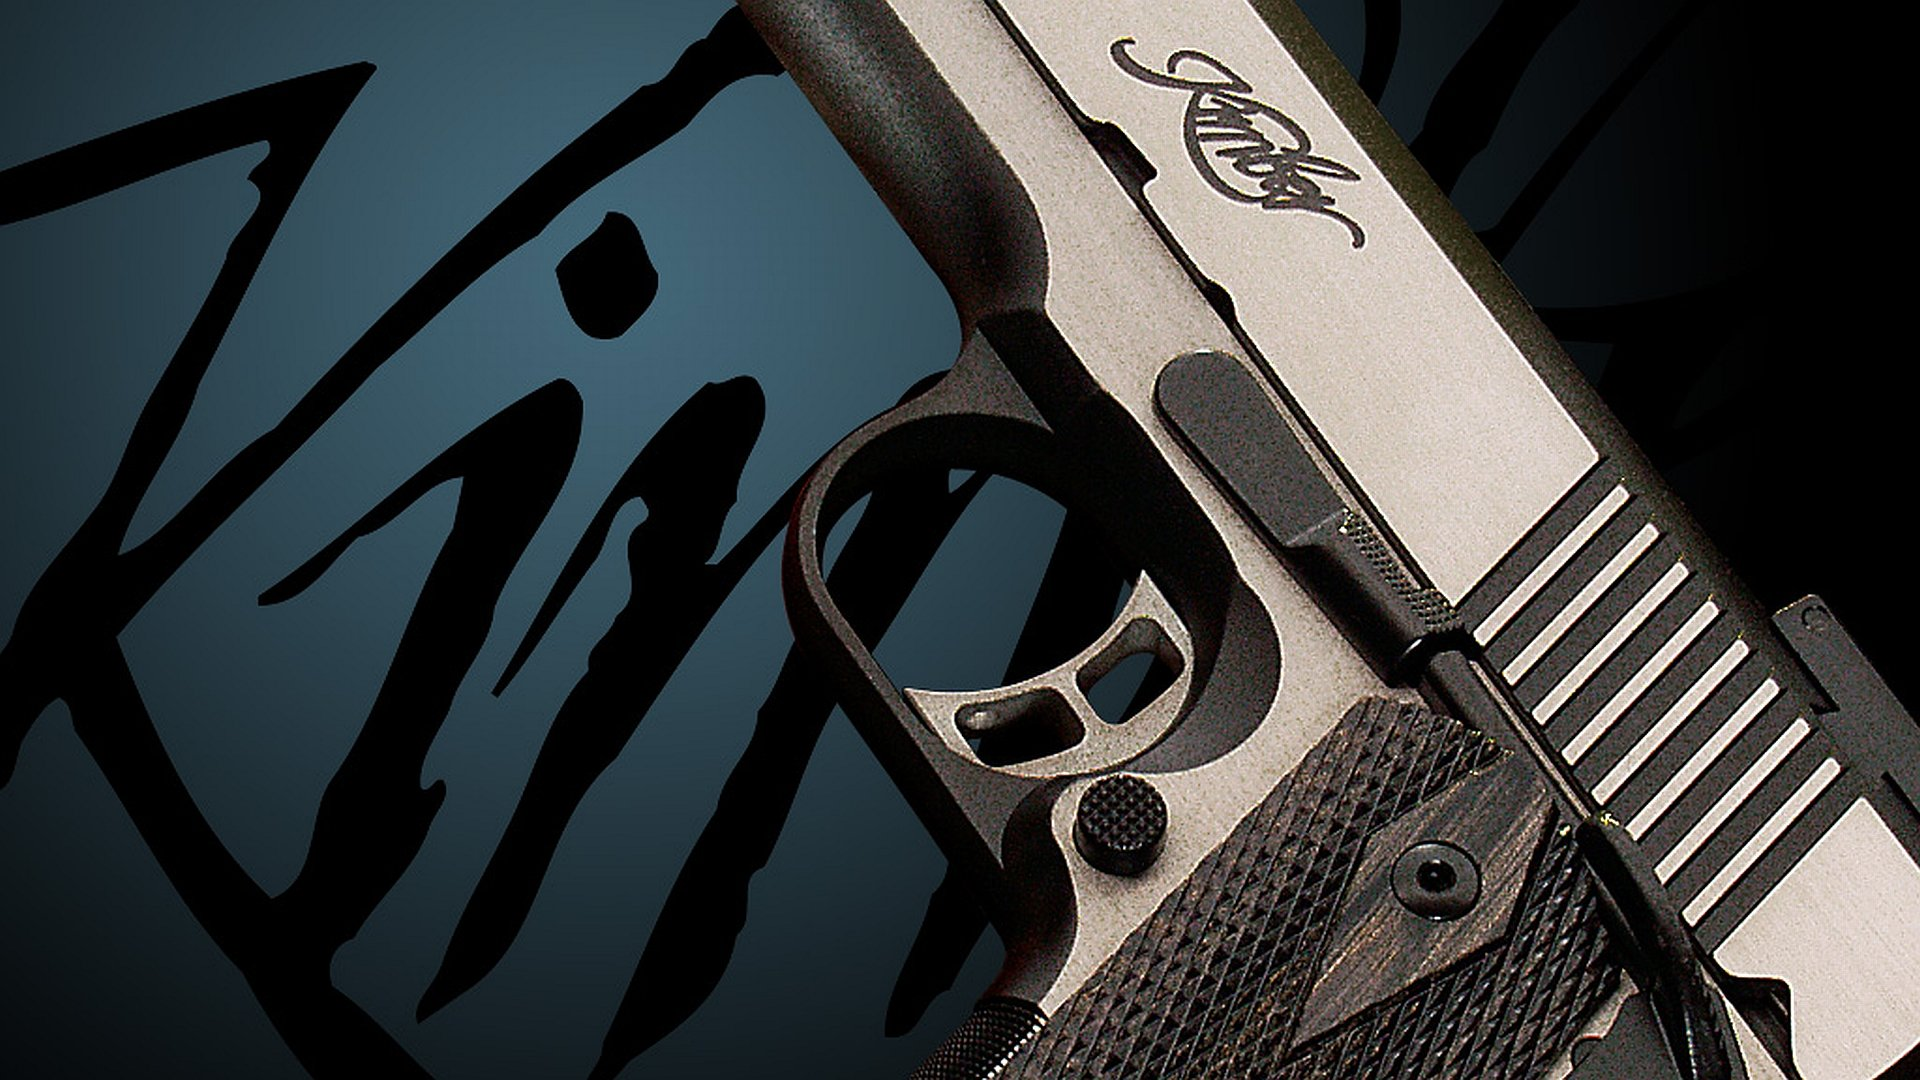 download Kimber Pistol wallpaper ID161124 full hd 1920x1080 1920x1080